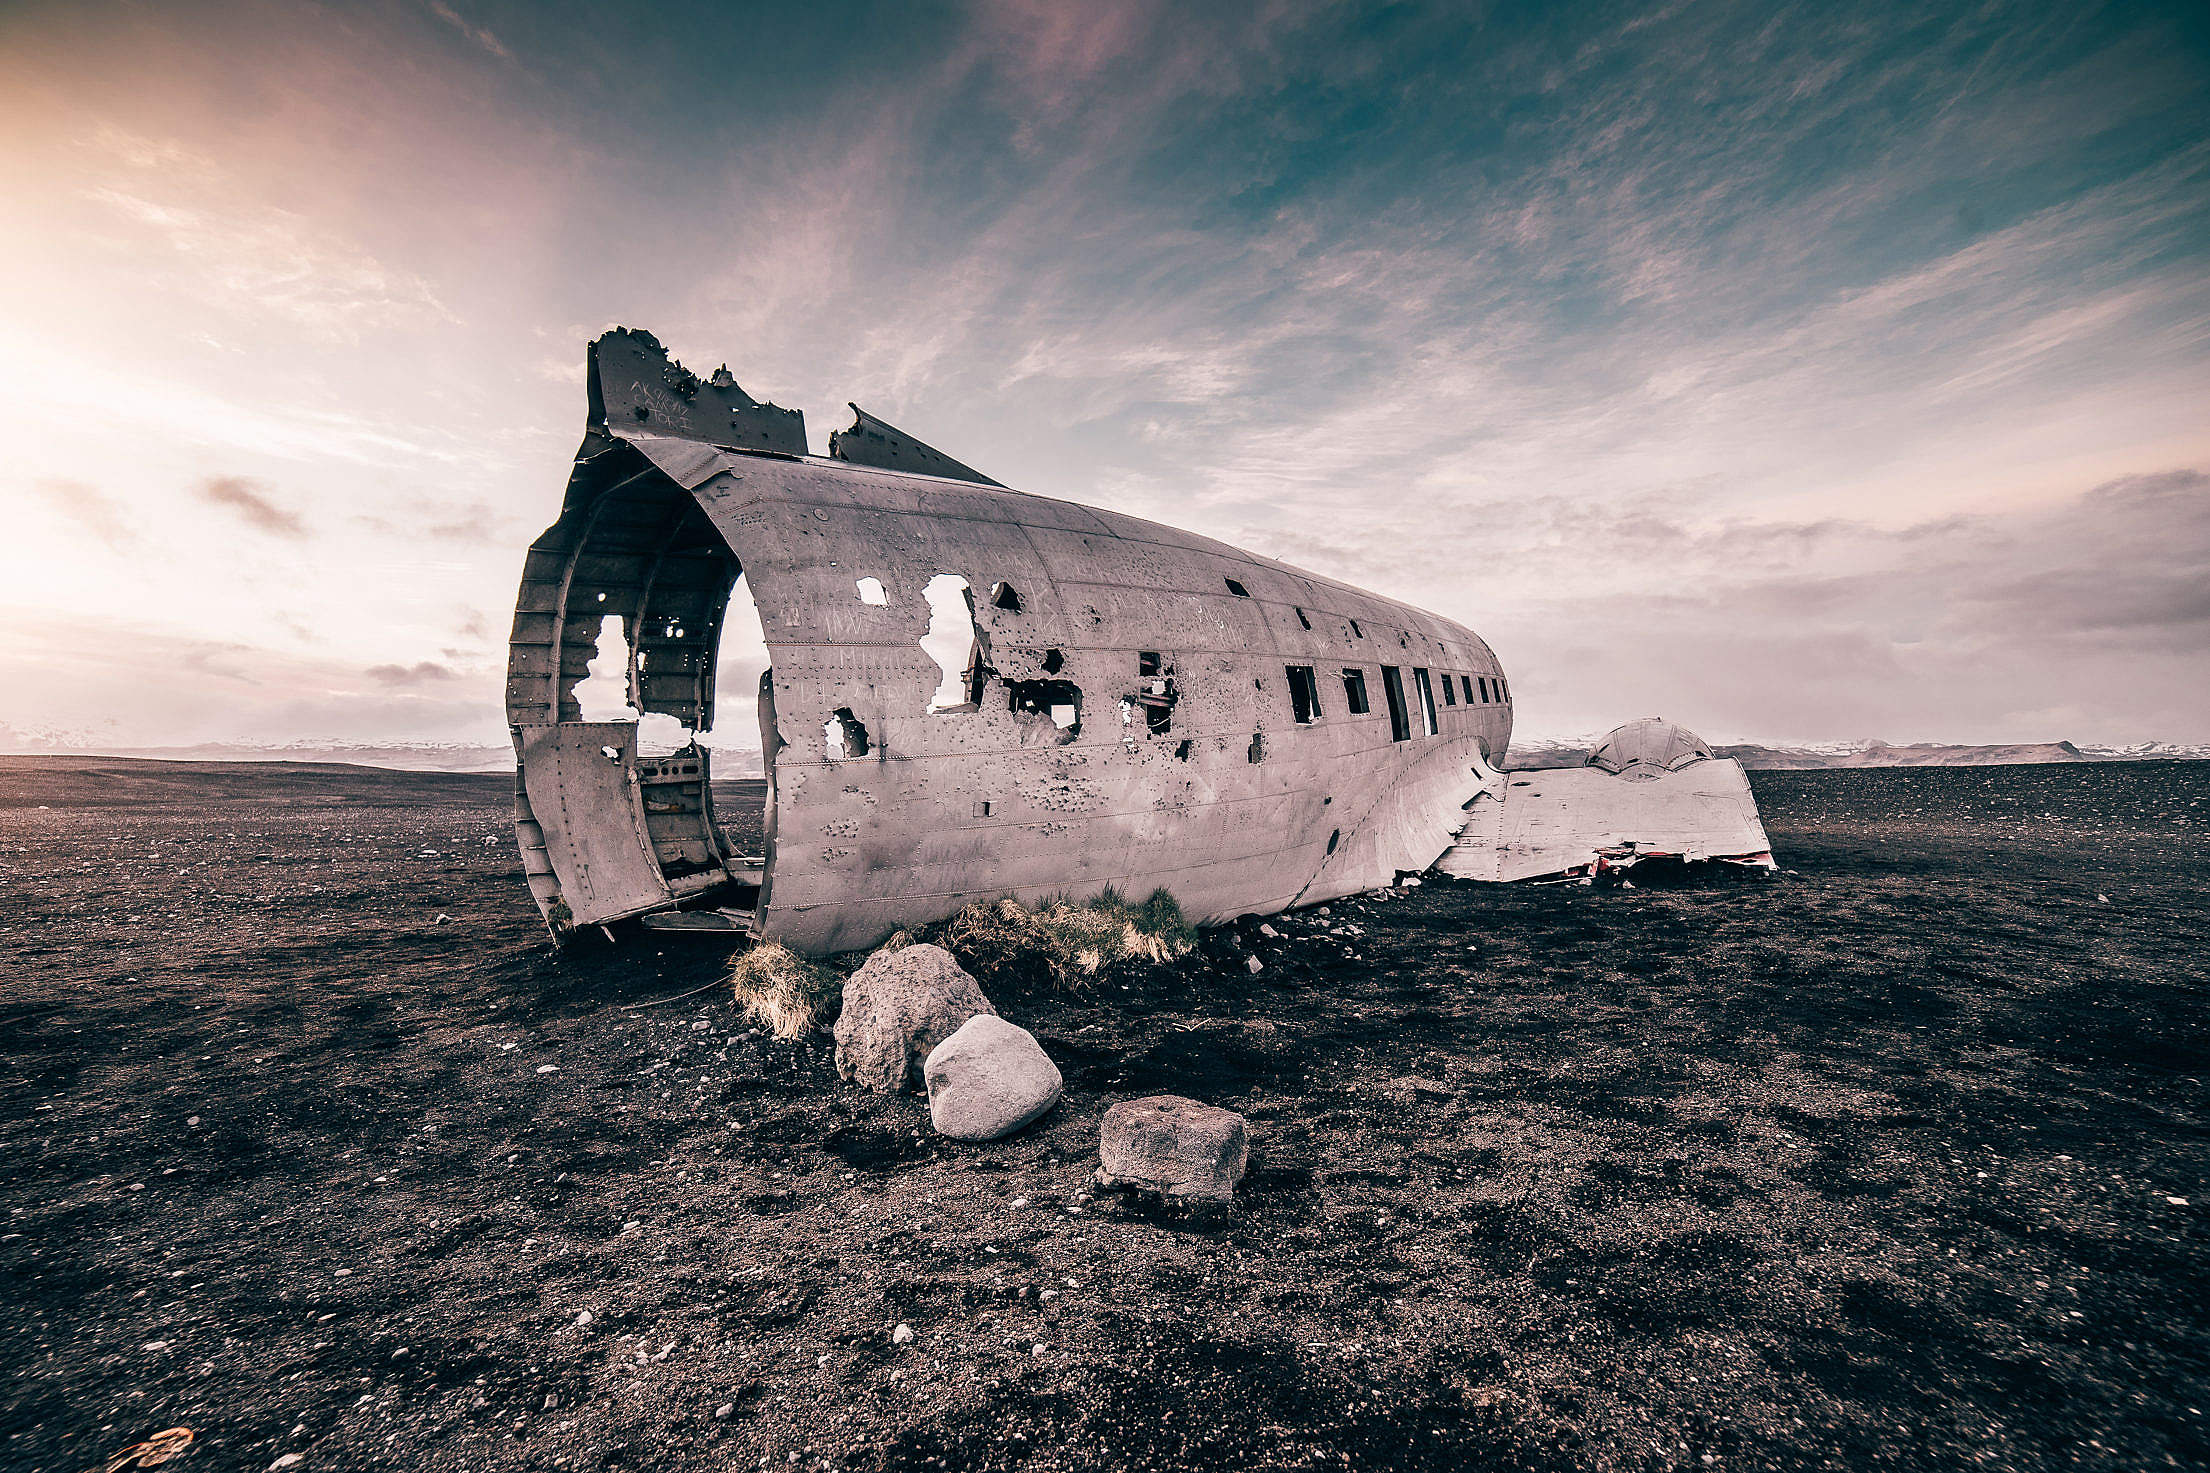 Old Ruined Plane on The Coast of Iceland Free Stock Photo